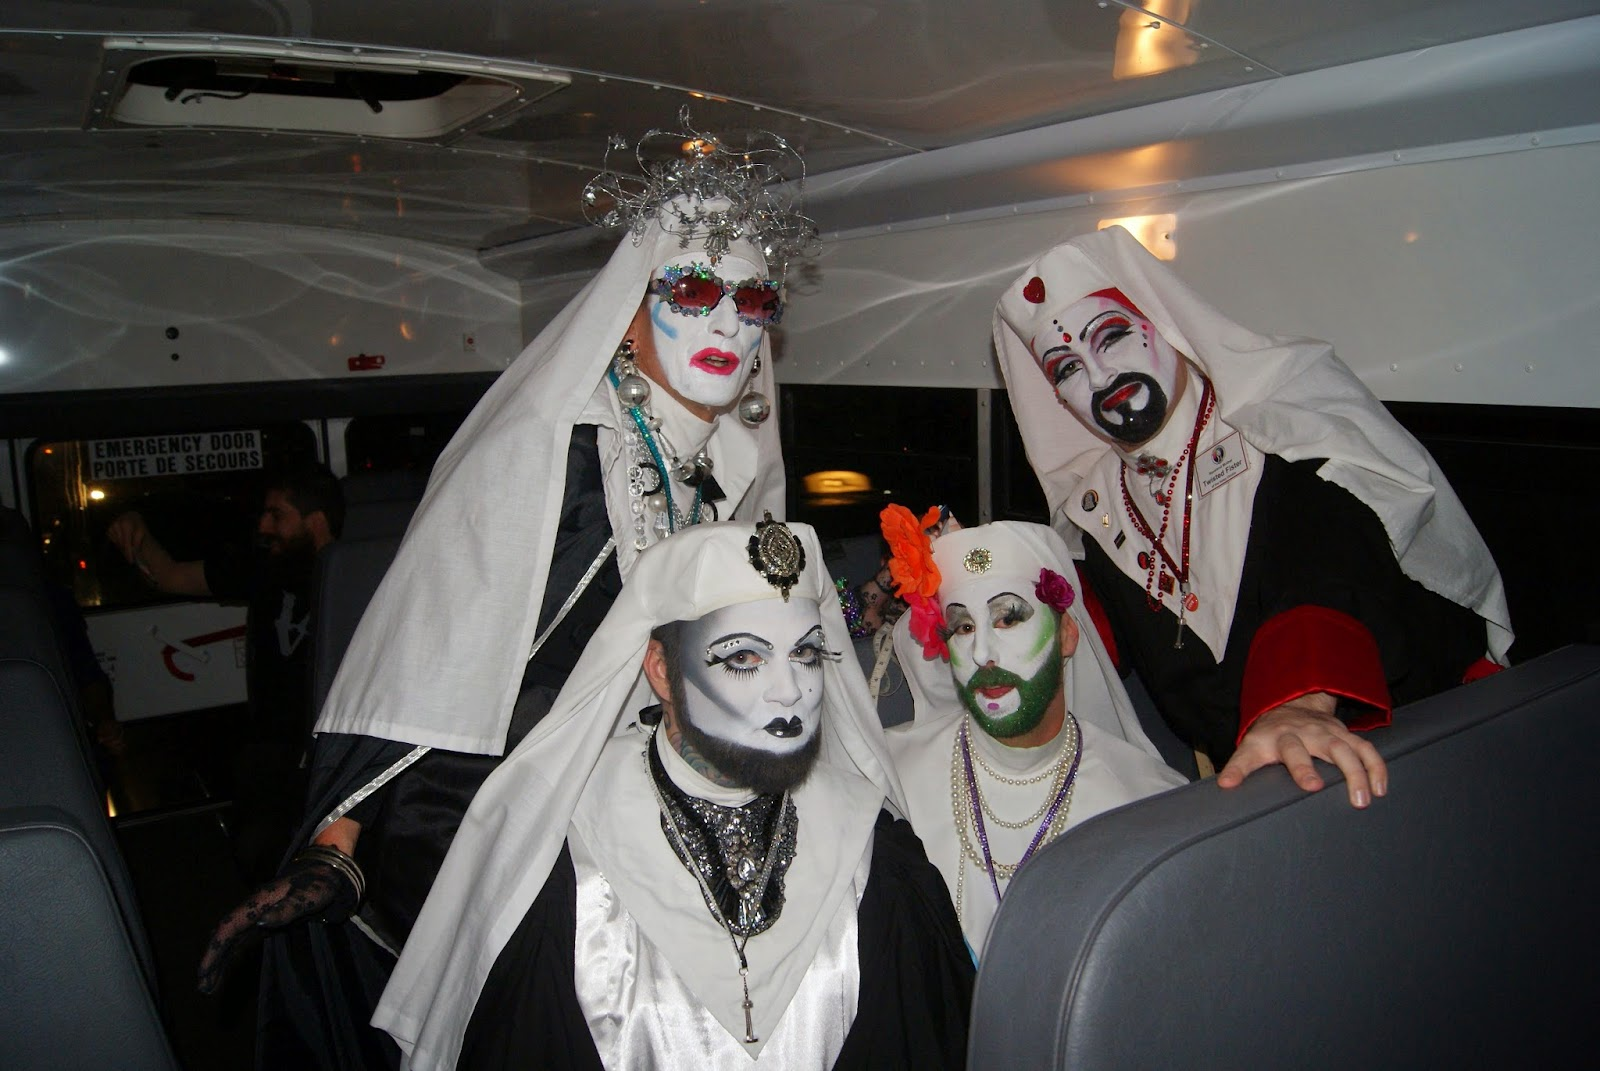 Nuit Rose Art Event: Bus ride, The Sisters of Perpetual Indulgence,Expert Nailz, Humboldt Magnussen, World Pride, Toronto, Melanie_Ps, The Purple Scarf, Ontario, Canada, culture, art, event,lifestyle, gay, lesbian, artmatters, LGBT, performance, nuns, dragqueens